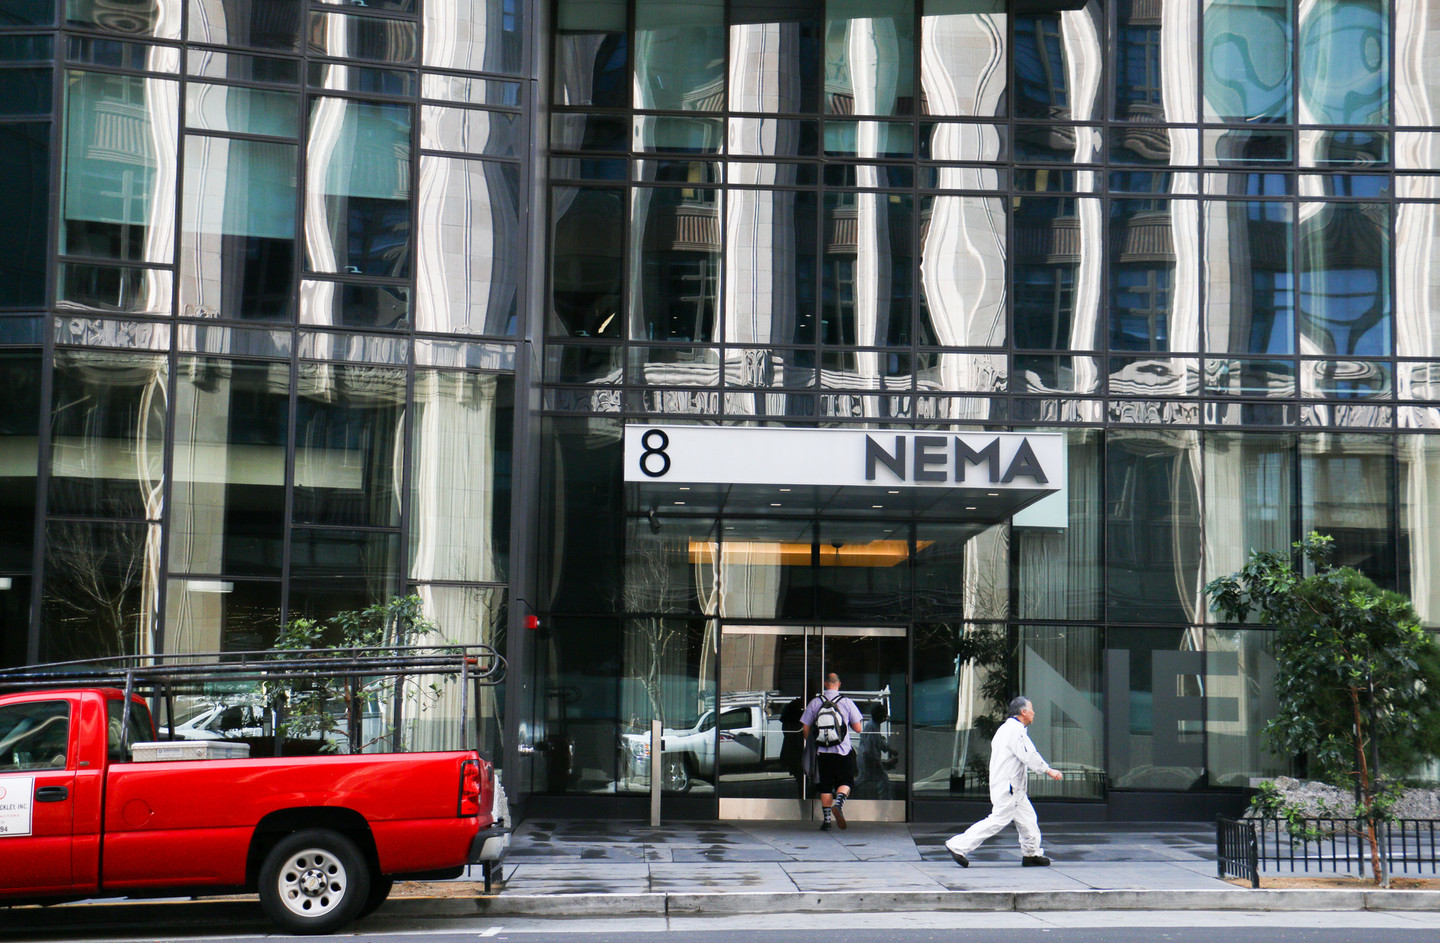 The NEMA Apartments at 8 10th St. are not a favorite of KQED listener Dave Taylor. (Katie Brigham/KQED)